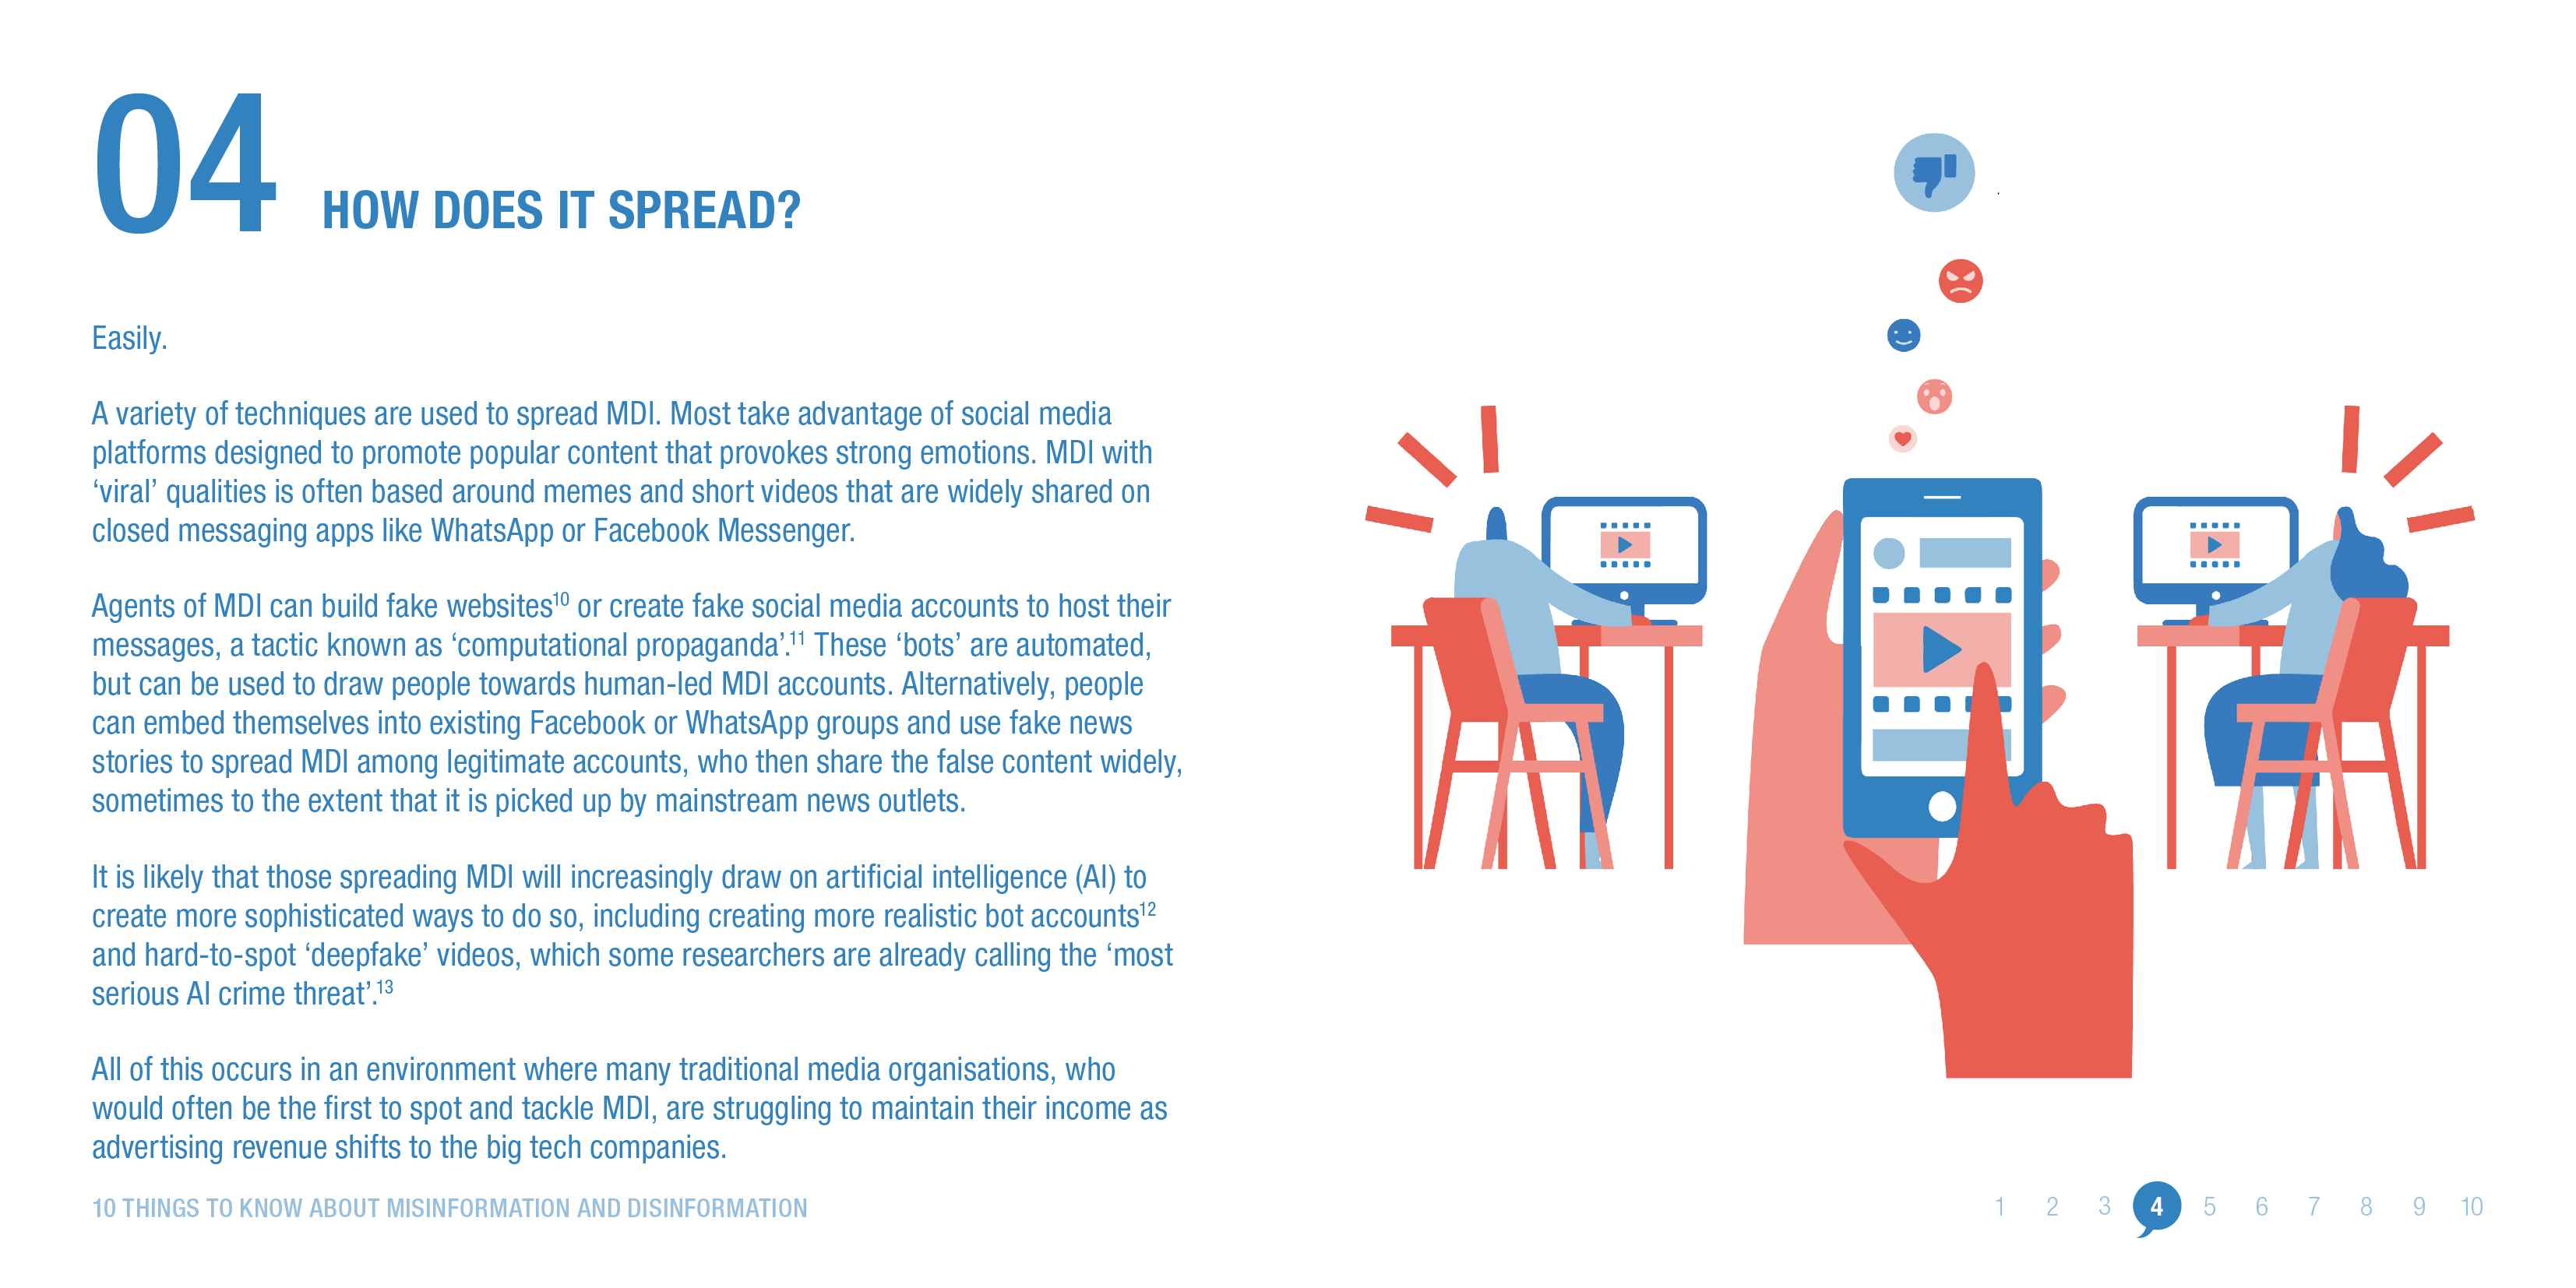 Misinformation and disinformation spread easily online. © ODI 2020